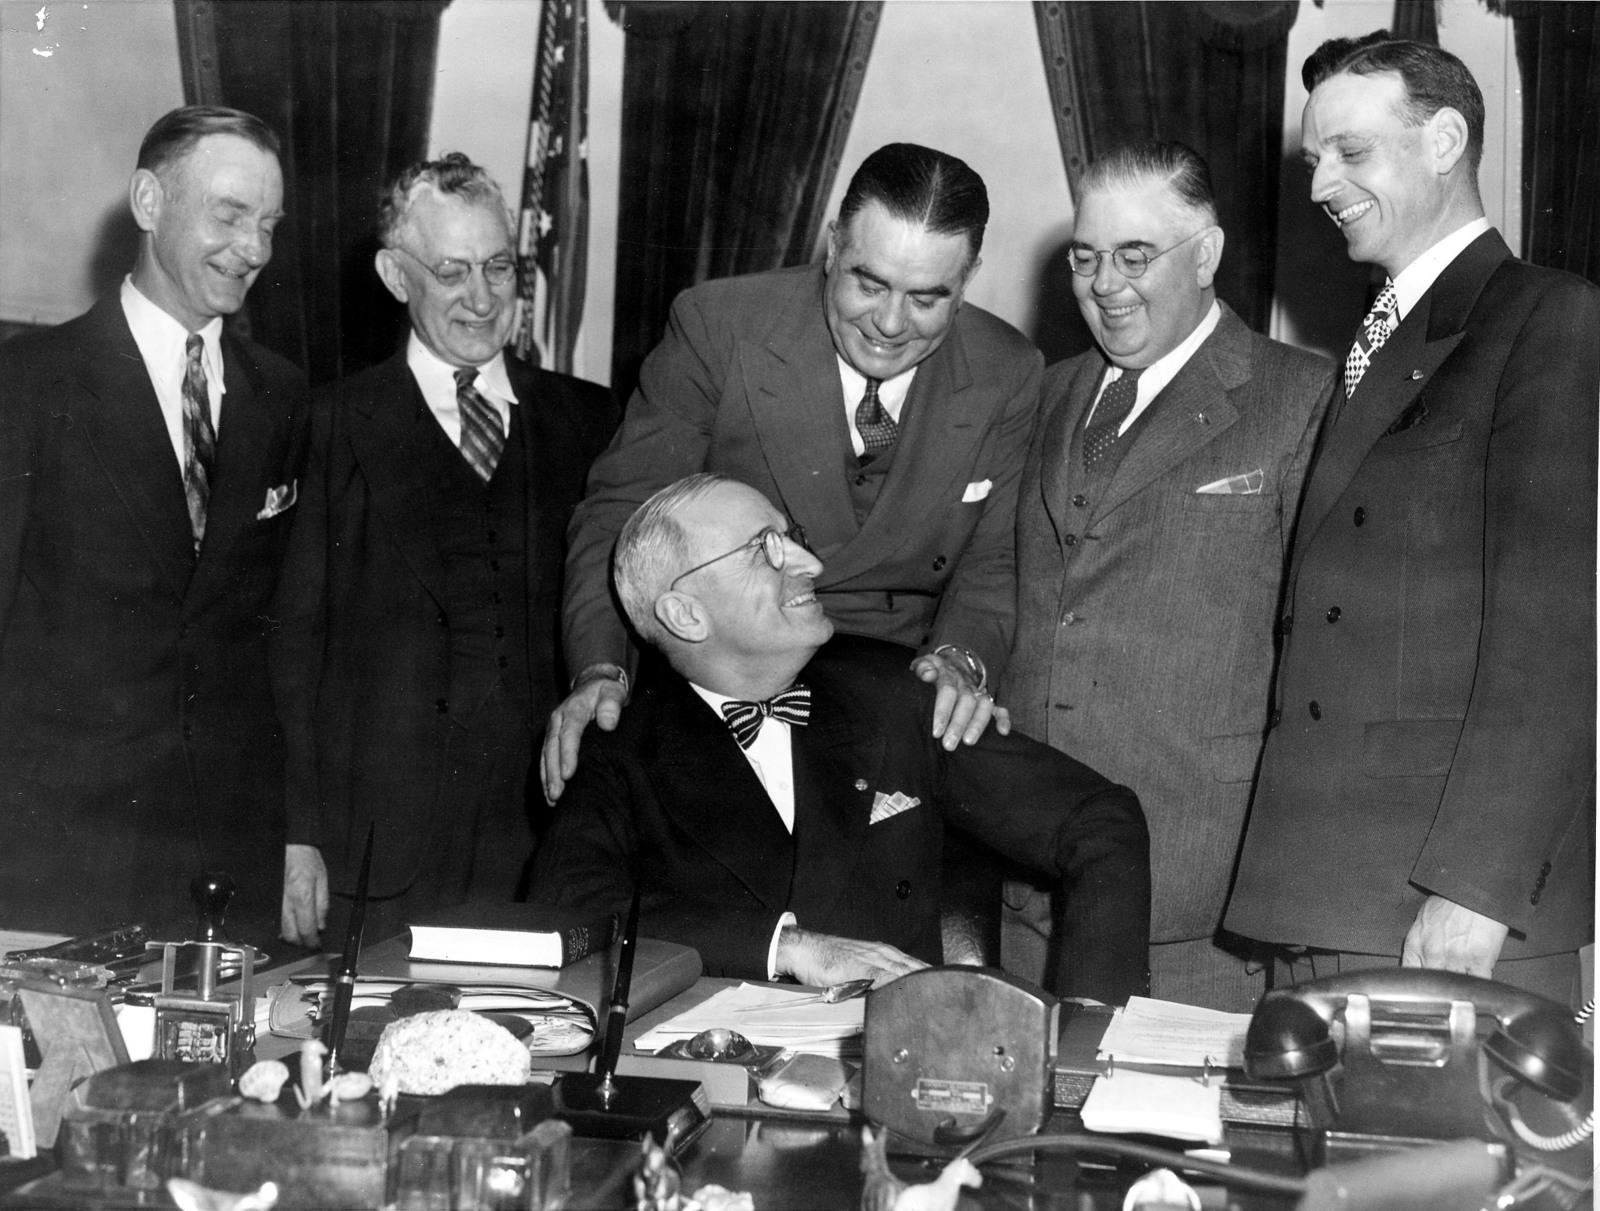 President Harry S. Truman in his Office